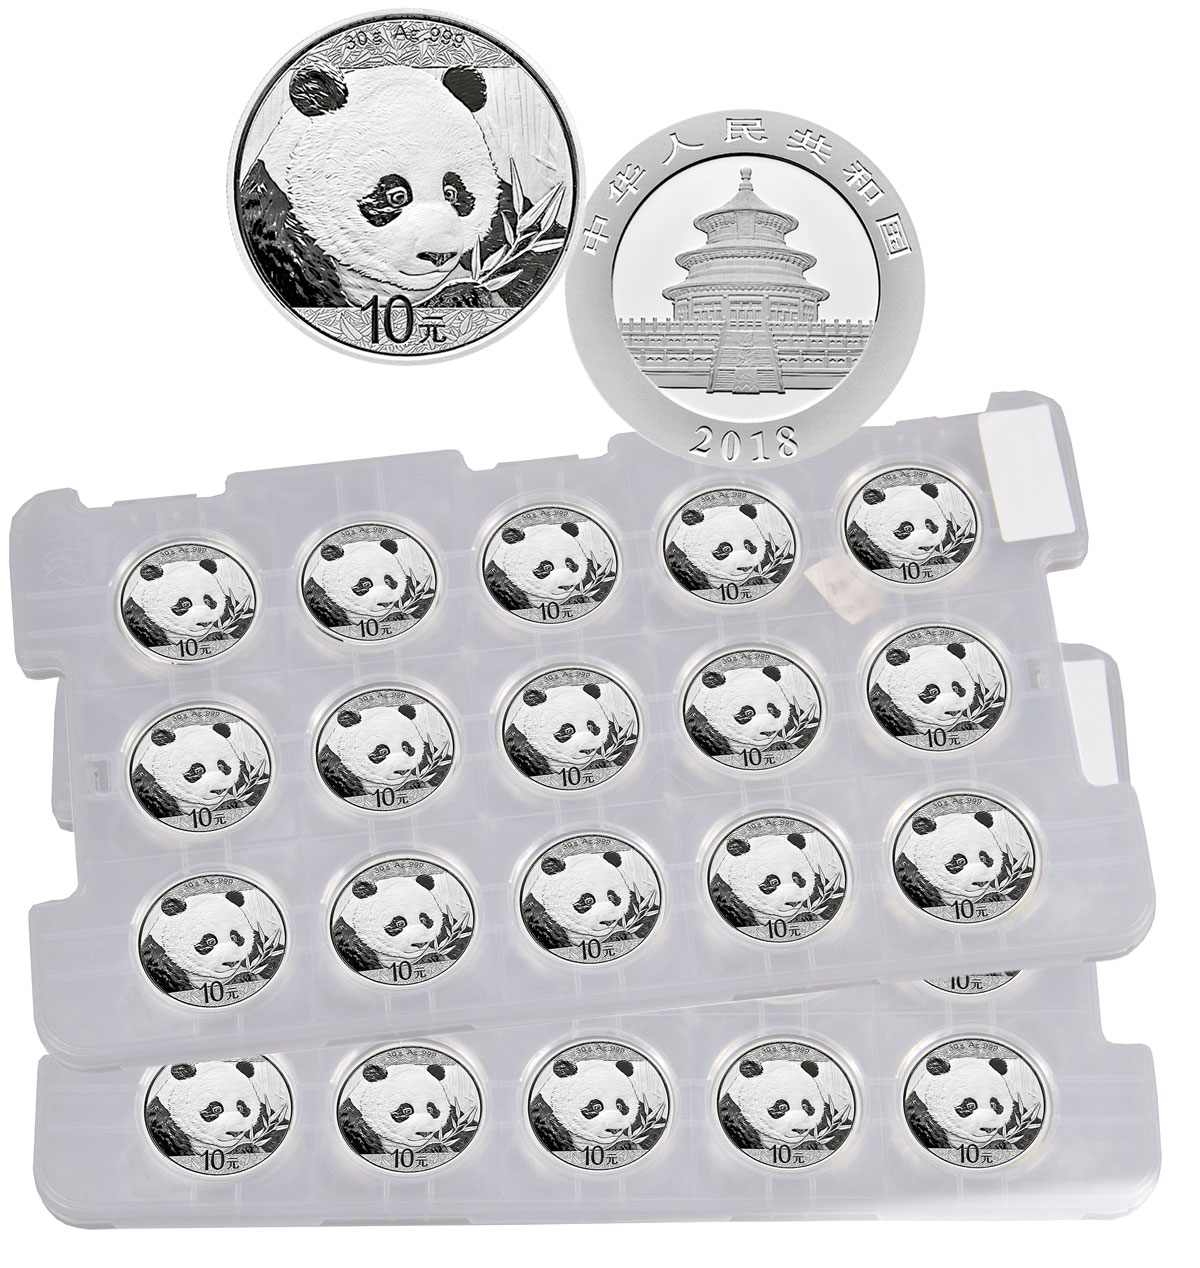 2 Sheets of 15 - 2018 China 30 g Silver Panda - 35th Anniversary ¥10 Coins GEM BU Original Mint Capsules